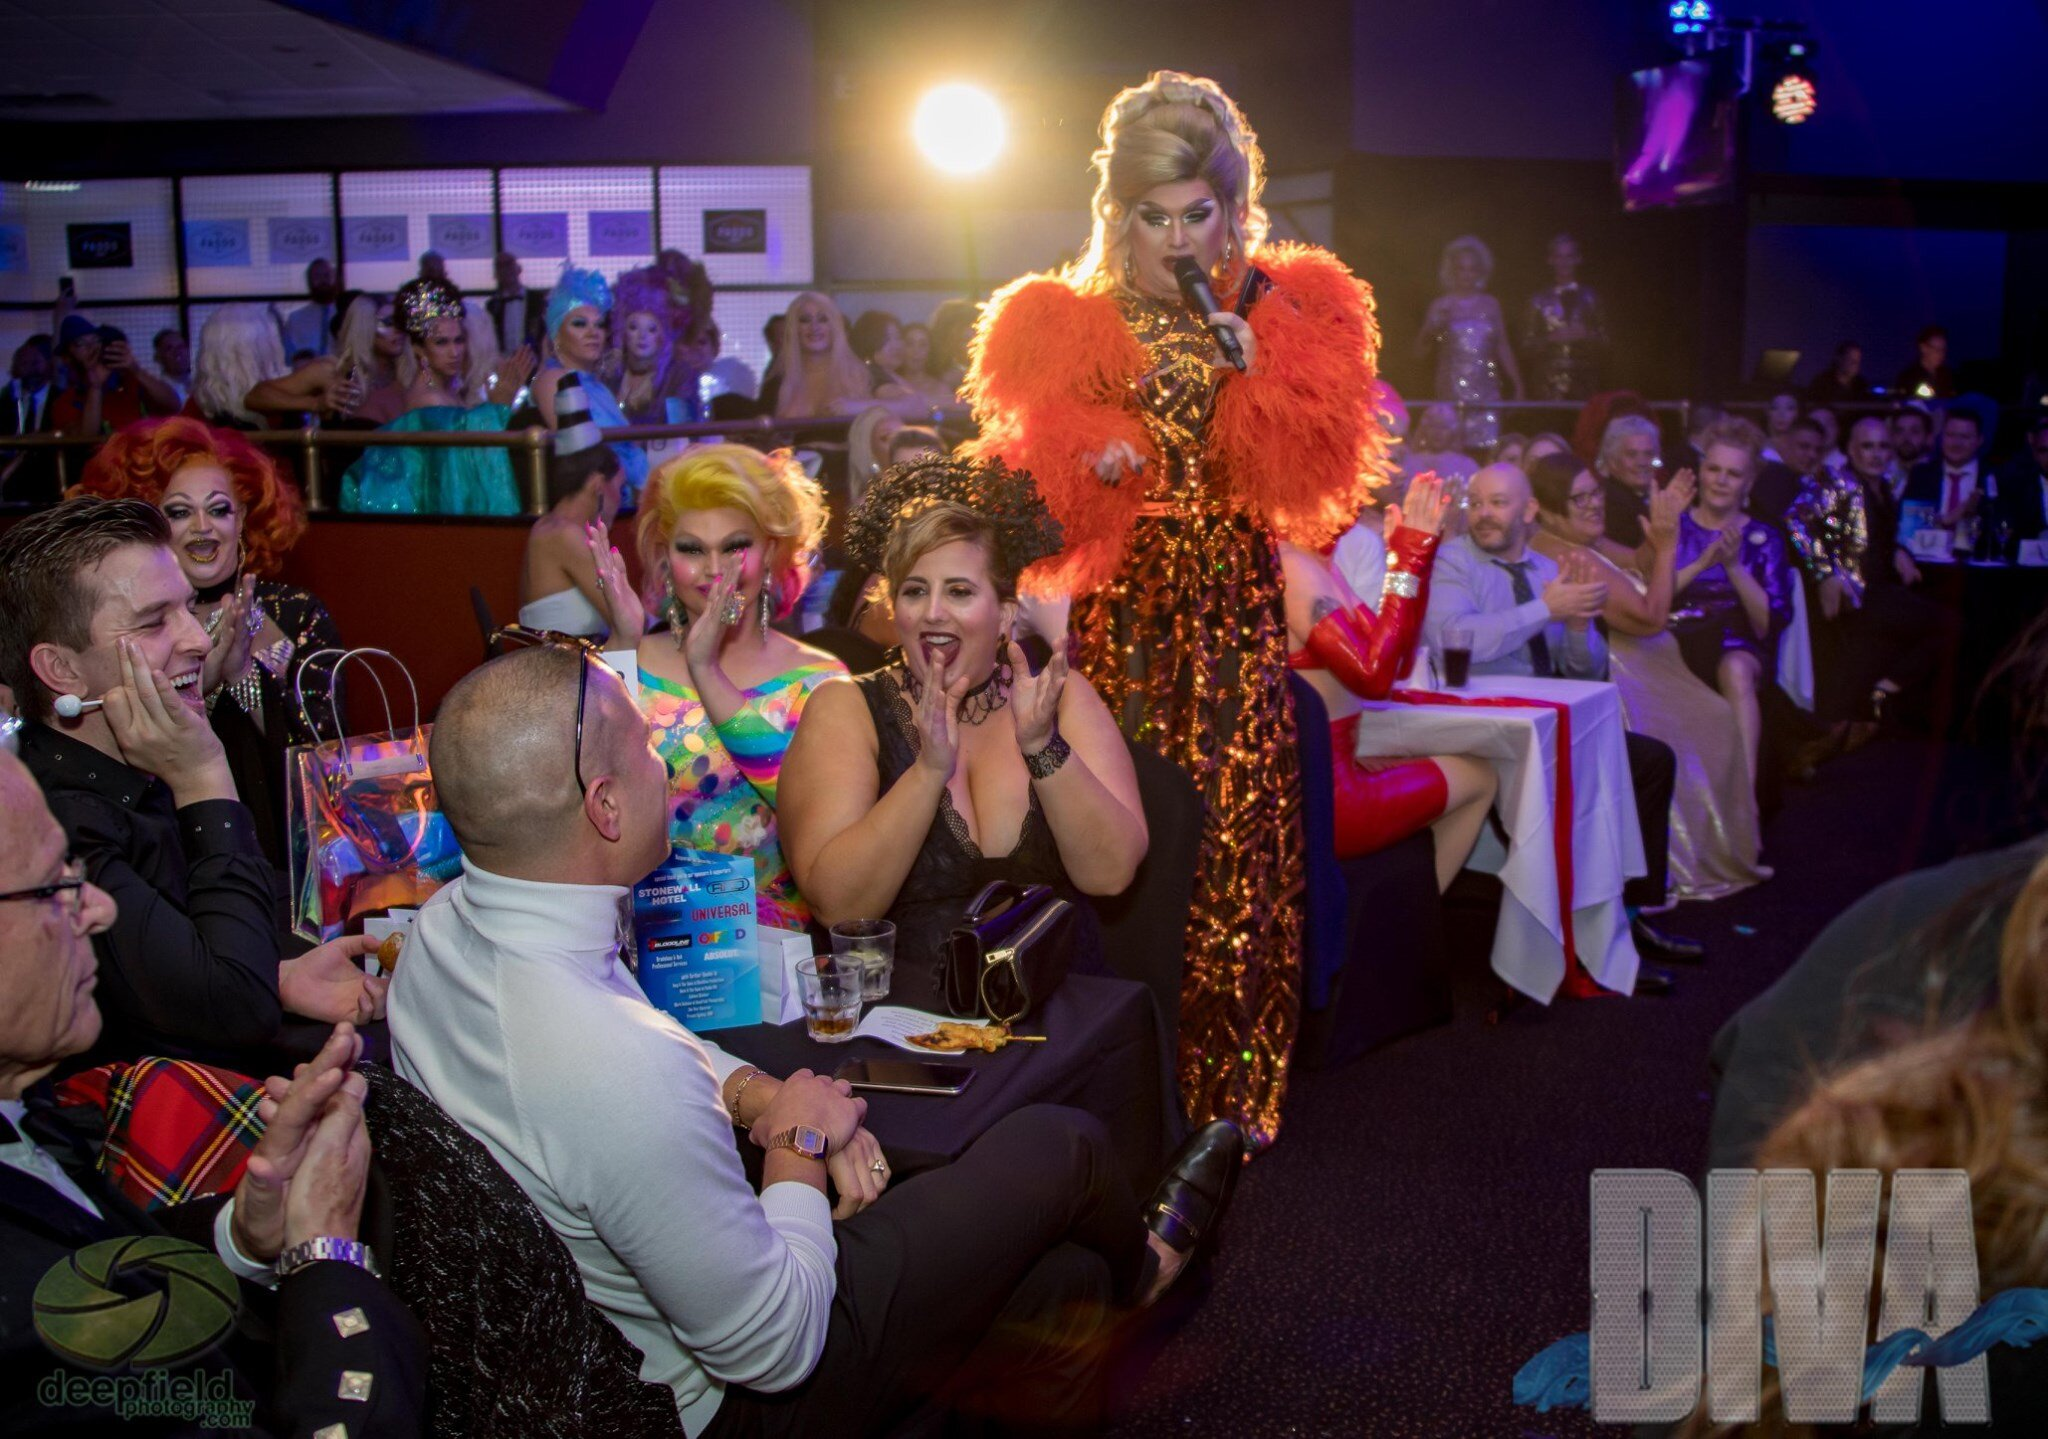 charisma-belle-corporate-host-event-hosting-diva-awards-sydney-drag-queen-royalty-best-hire-drag-race-australia-wigs-by-vanity-courtney-act.jpg